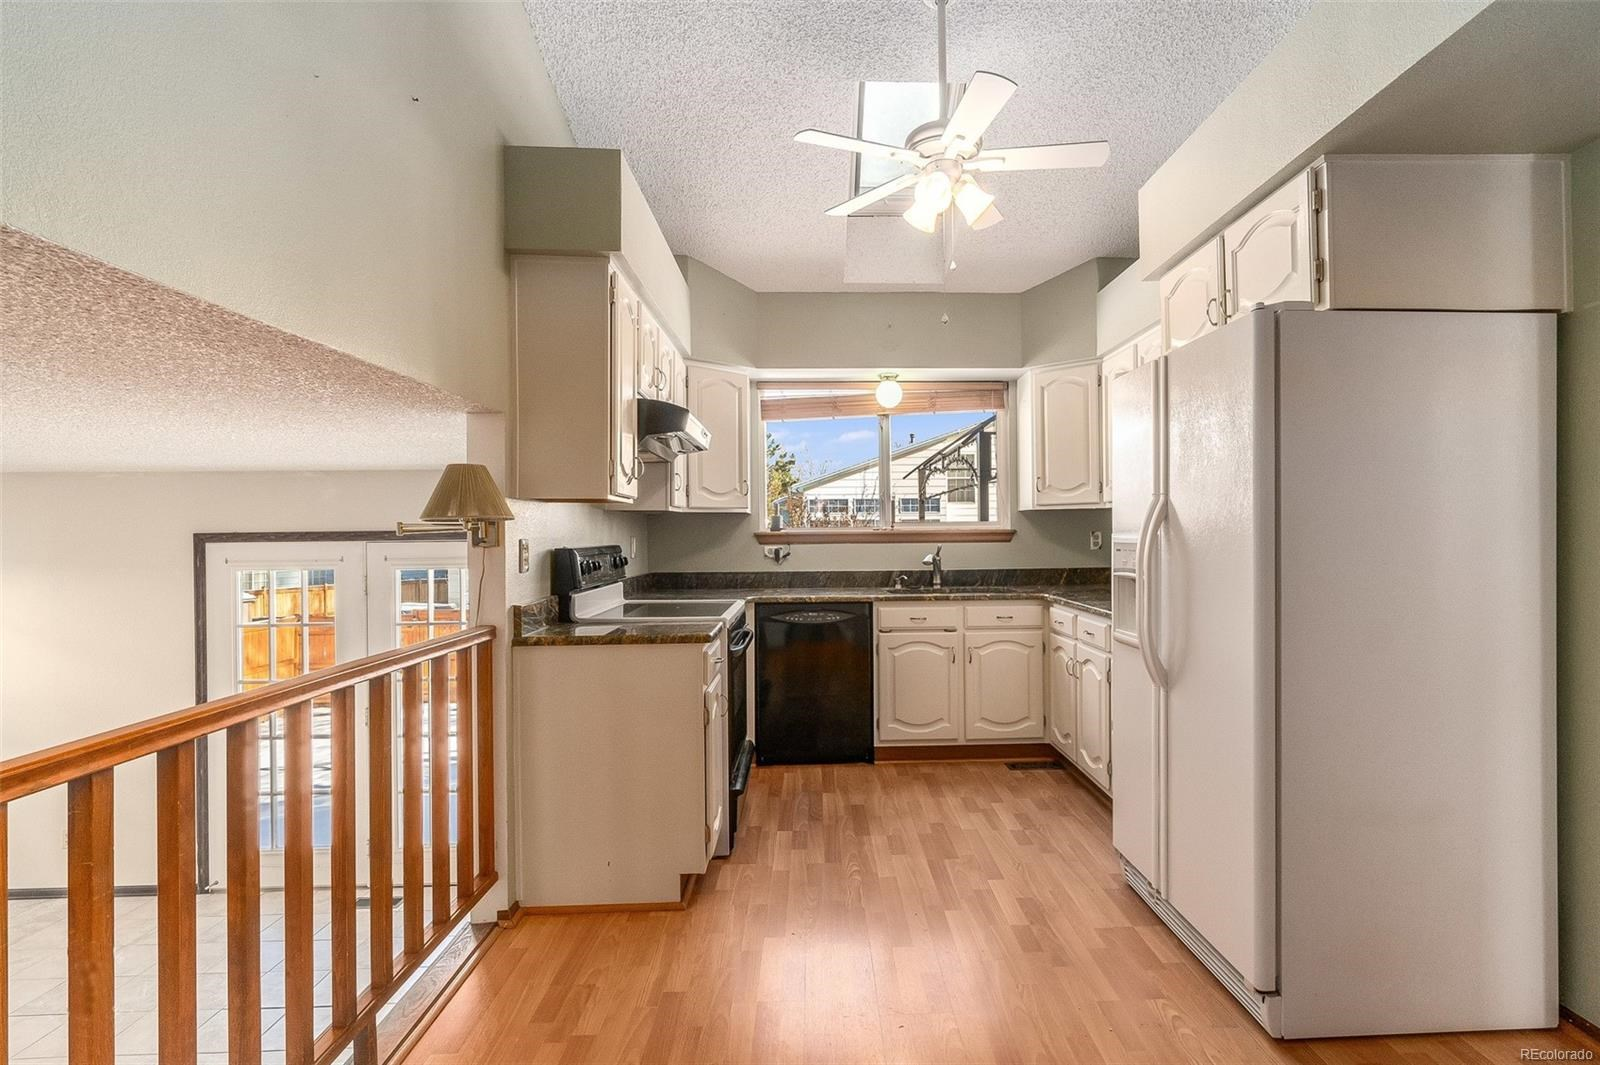 MLS# 4661252 - 7 - 4666 N Wildflowers Way, Castle Rock, CO 80109